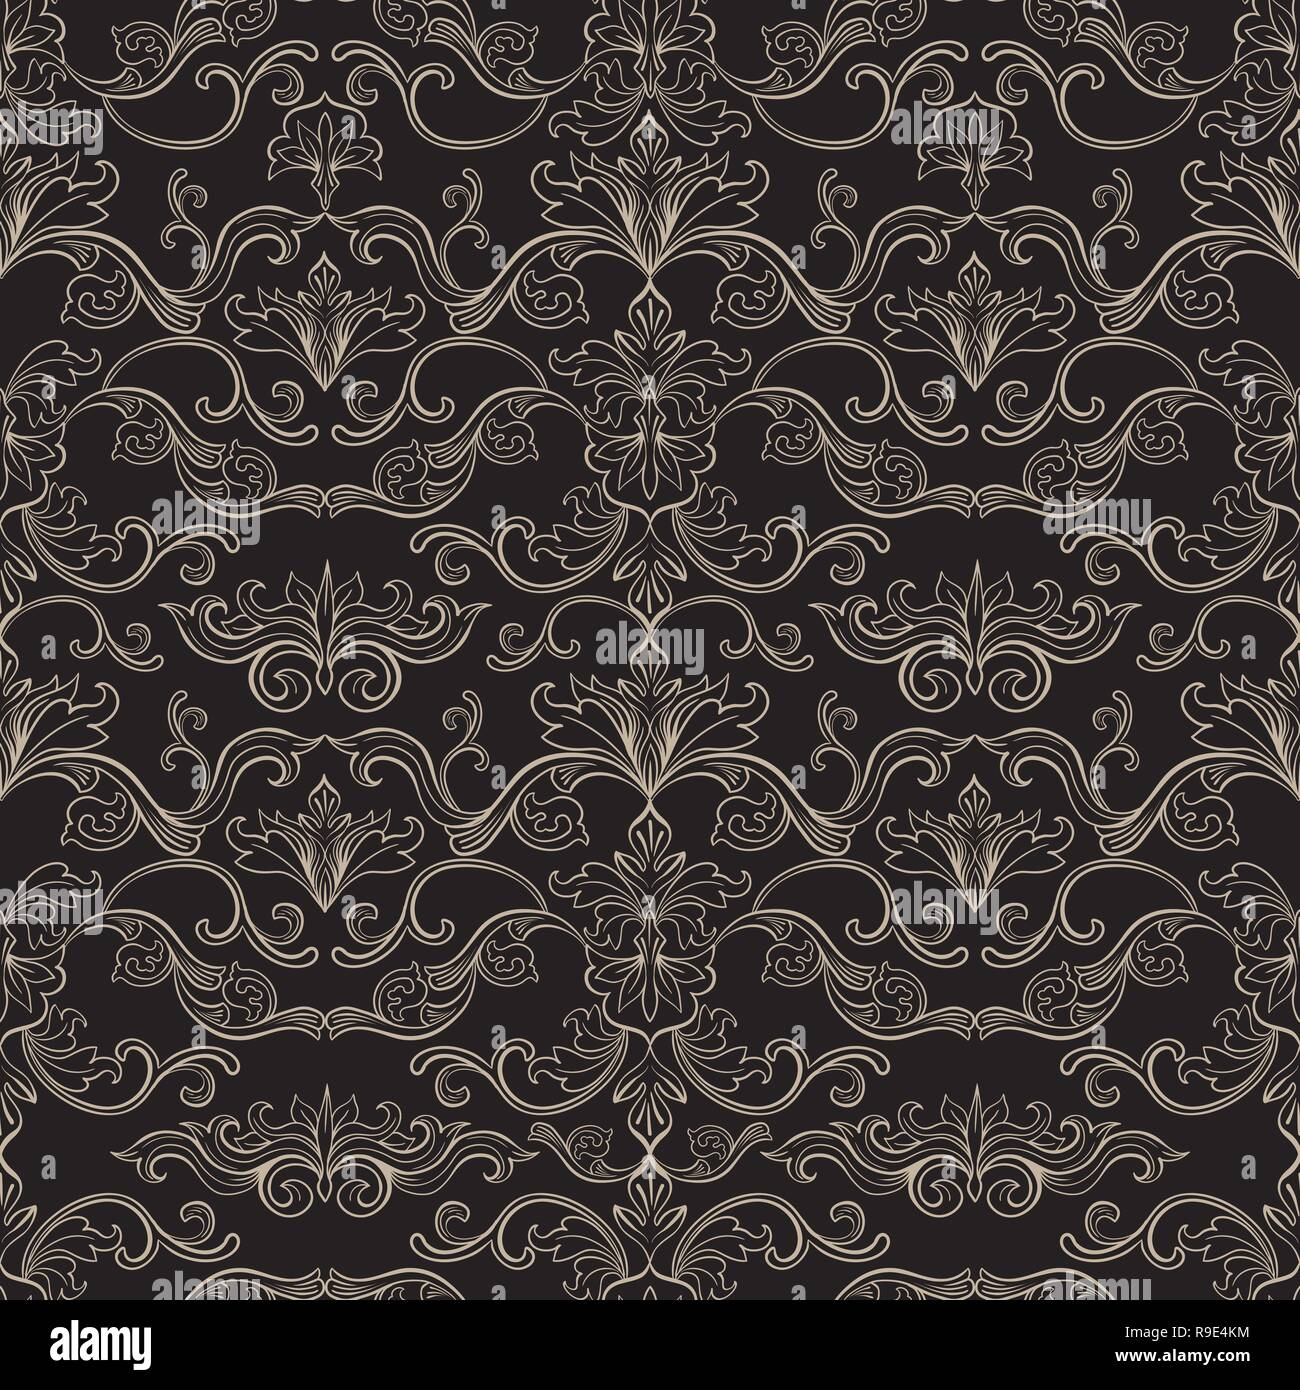 Tapete Papier Damast Vektor Nahtlose Muster Vintage Style Tapete Teppich